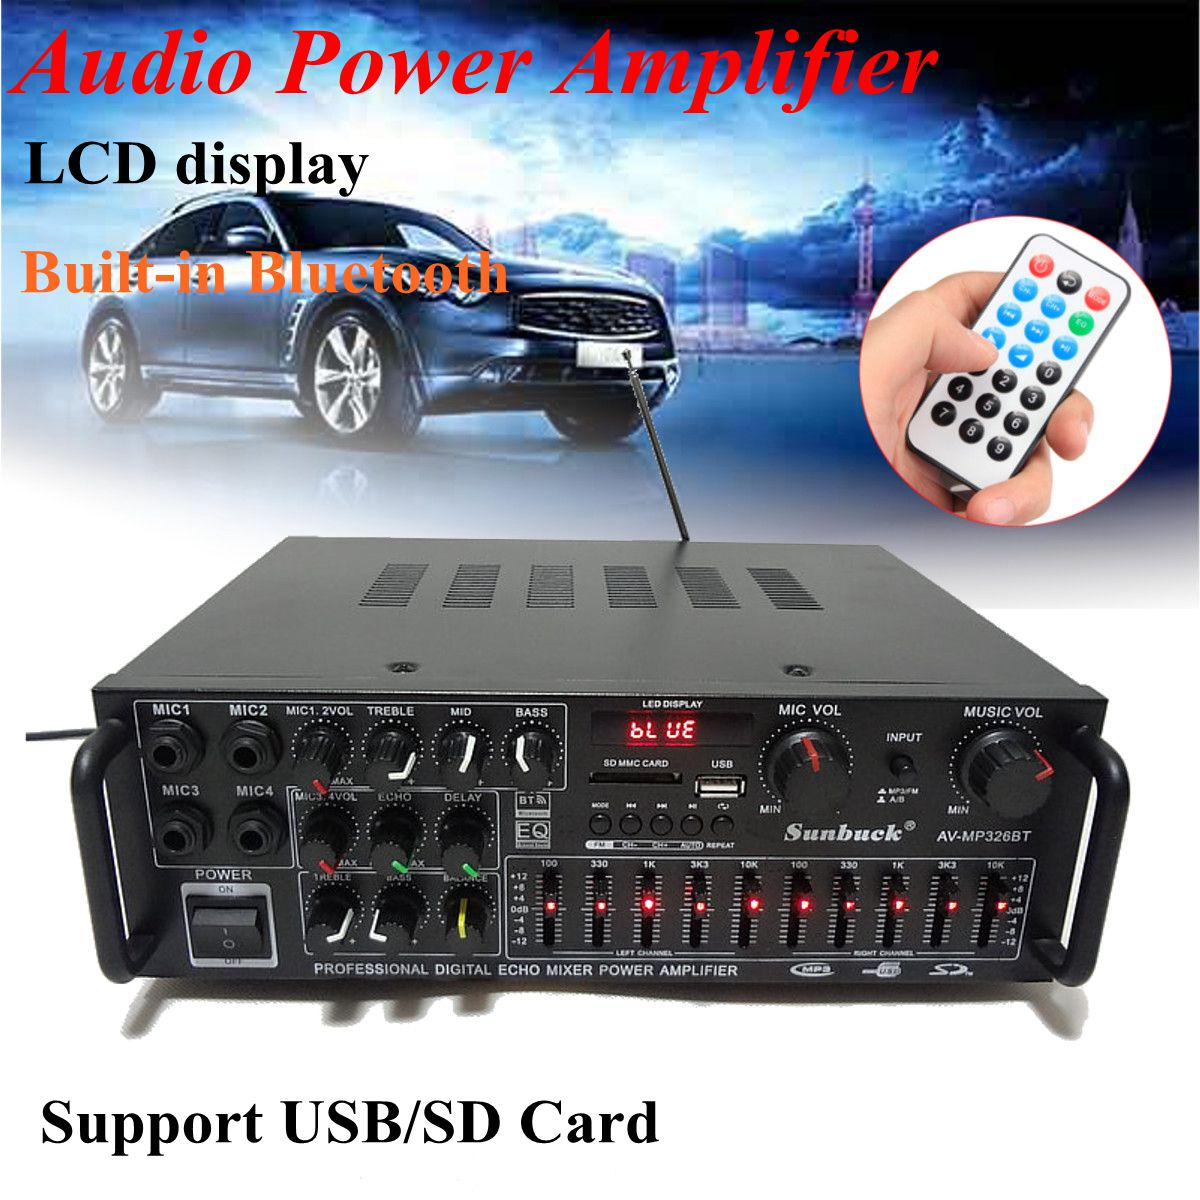 2000W Bluetooth 2.0 Channel Audio Power HiFi Amplifier Stereo 326BT 12V/220V AV Amp Speaker Support 4 Microphone with Remote eu us 1 in 4 audio signal switcher amplifier preamp hifi for headset speaker compact preamp 4 channel stereo microphone